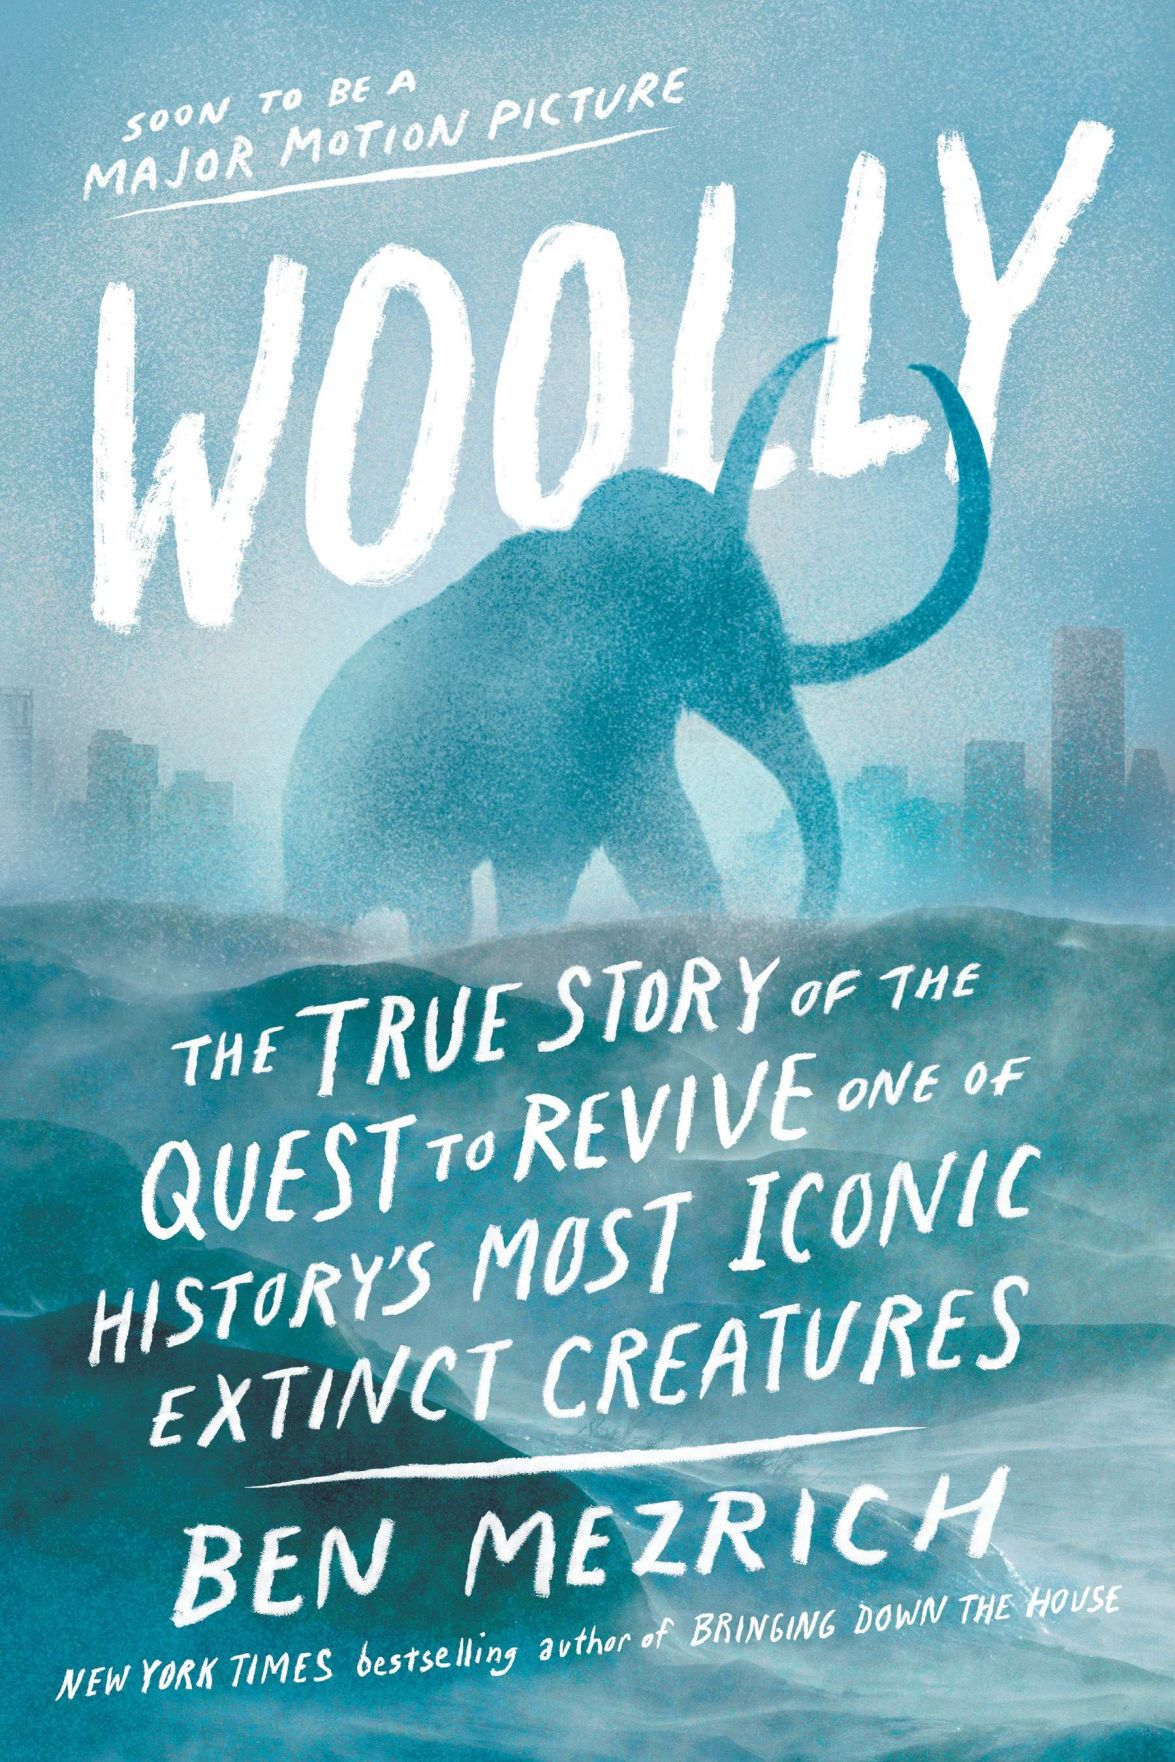 """Woolly: The True Story of the De-Extinction of One of History's Most Iconic Creatures"""